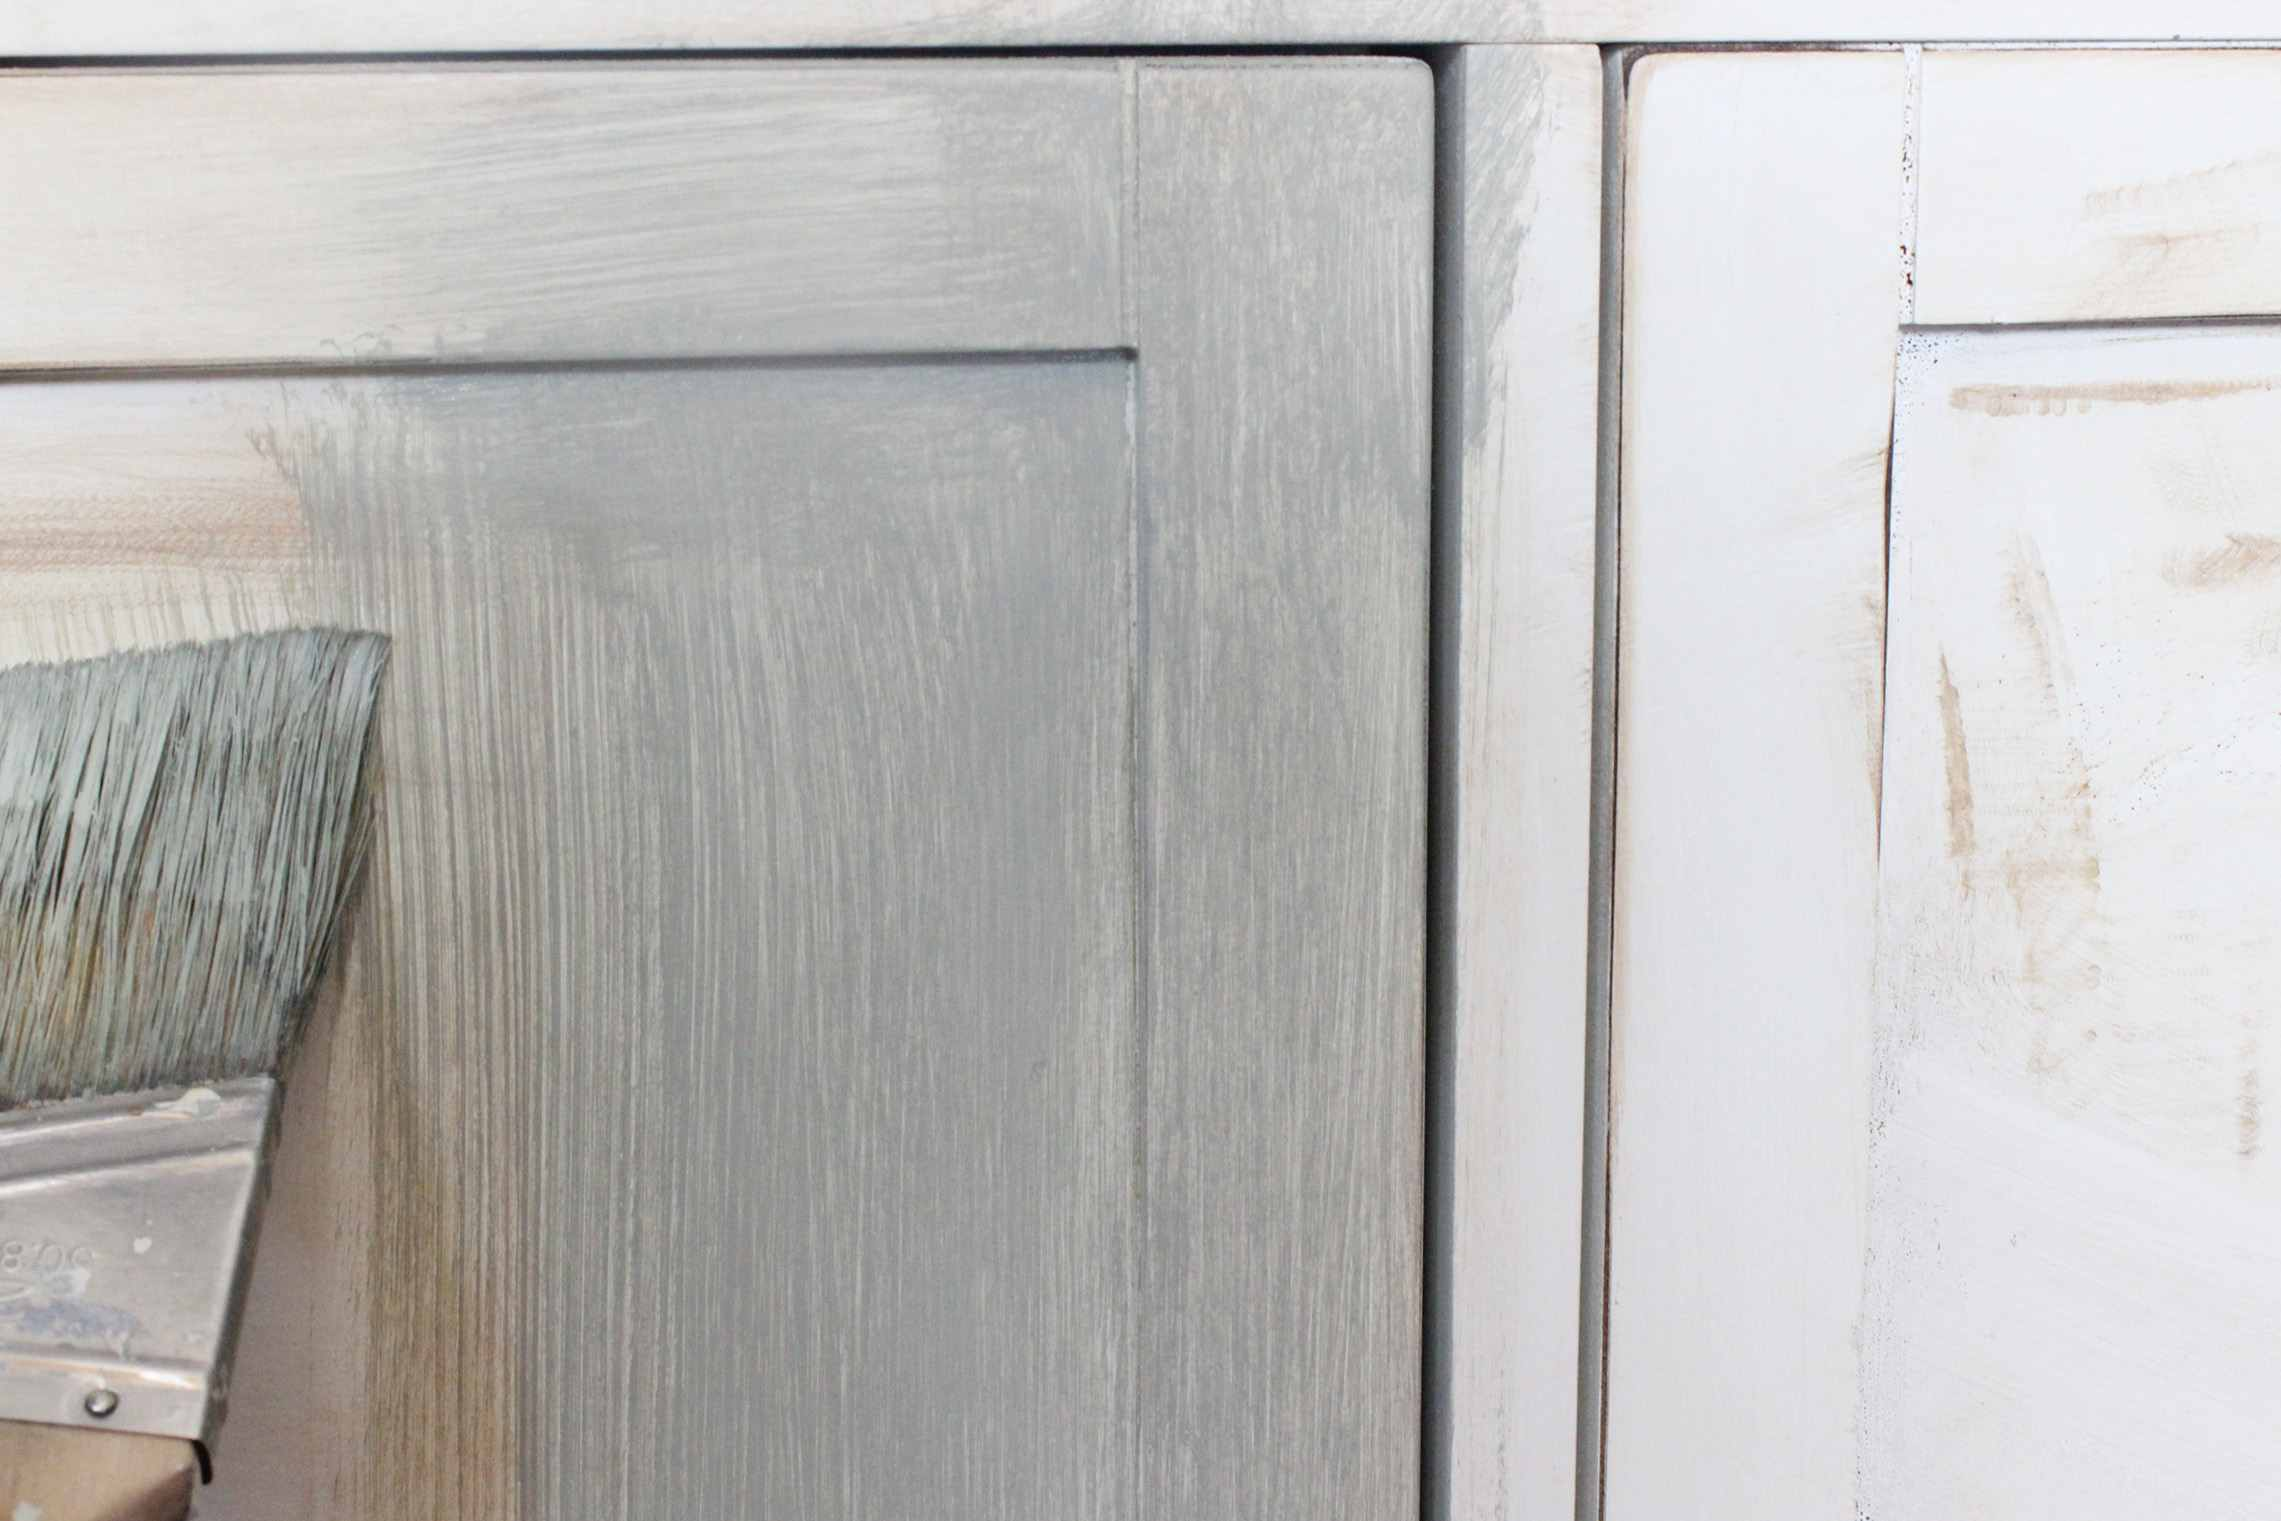 how to distress wood to make it look old